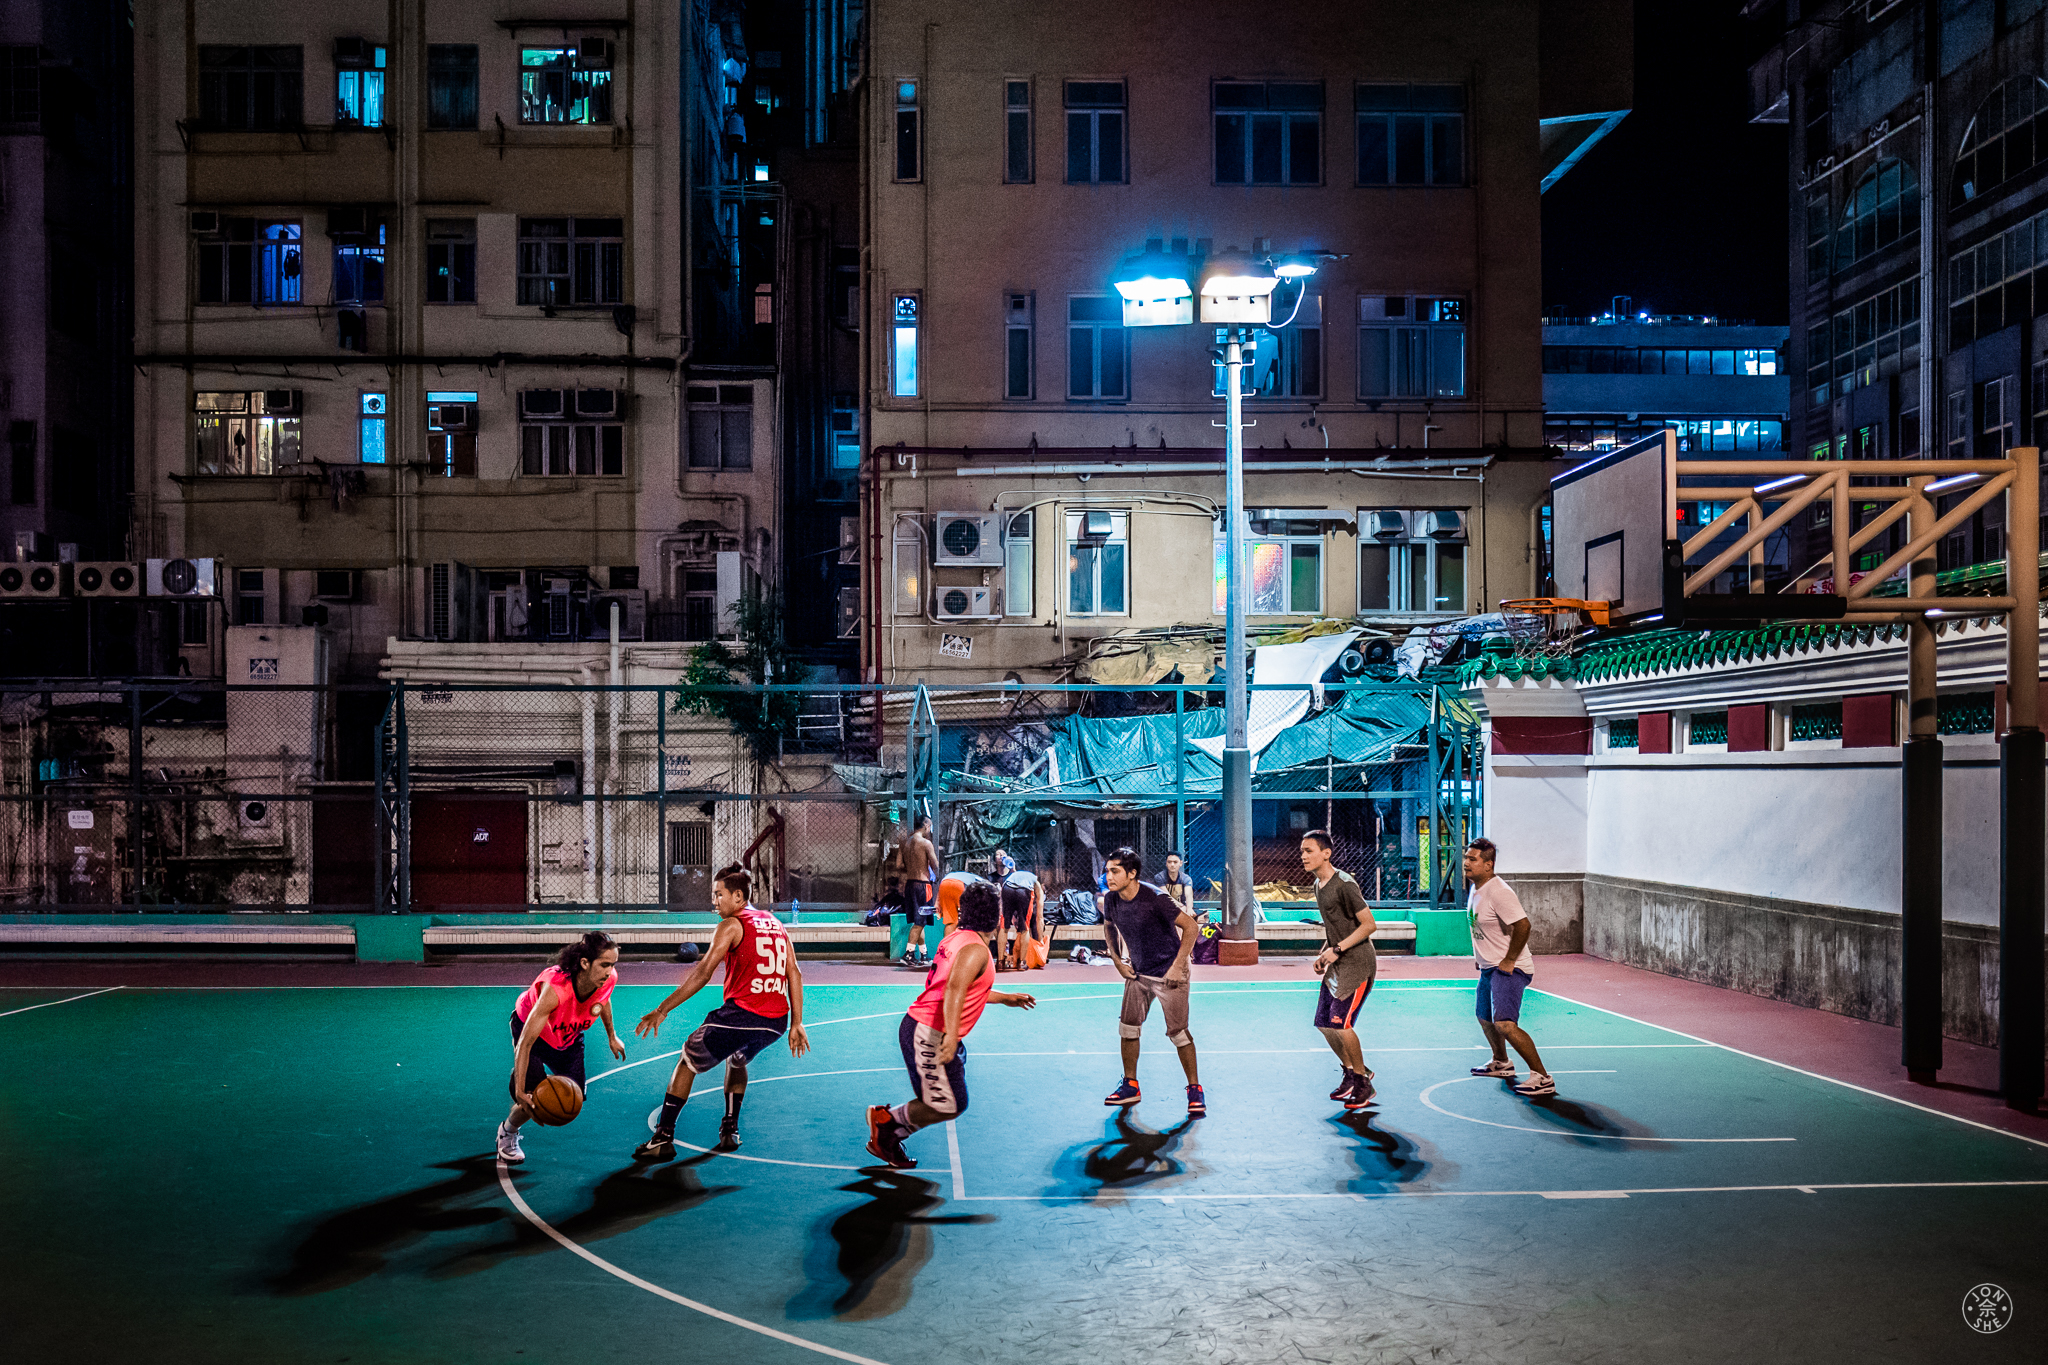 """""""Late Game"""". I came upon this group of young men playing basketball on a court in the middle of a cluster of old apartment buildings, late in the evening. I tried to have a decent depth of field in order to get details of the buildings in the backdrop, while still having an aperture wide enough for a shutter speed to capture the moving players. Kowloon, Hong Kong, China. June 2016. Leica Q (Typ 116), Leica Summilux-M 28mm ASPH. © Jon She."""